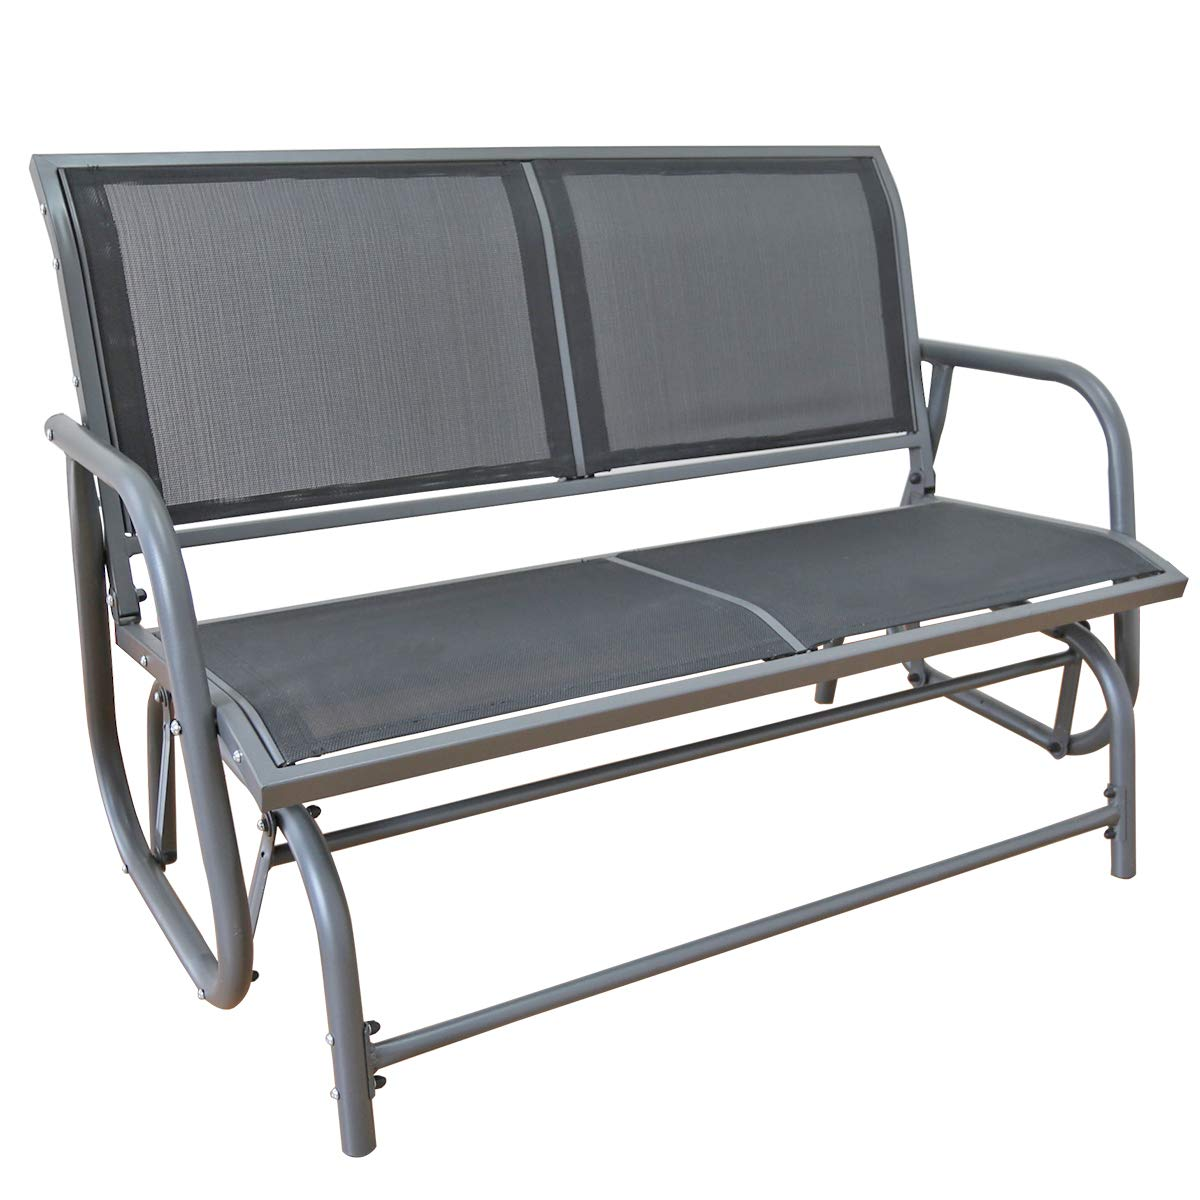 Yardeen Porch Swing Glider Chair Loveseat Rocking Bench Garden Seating, Double Grey Mesh